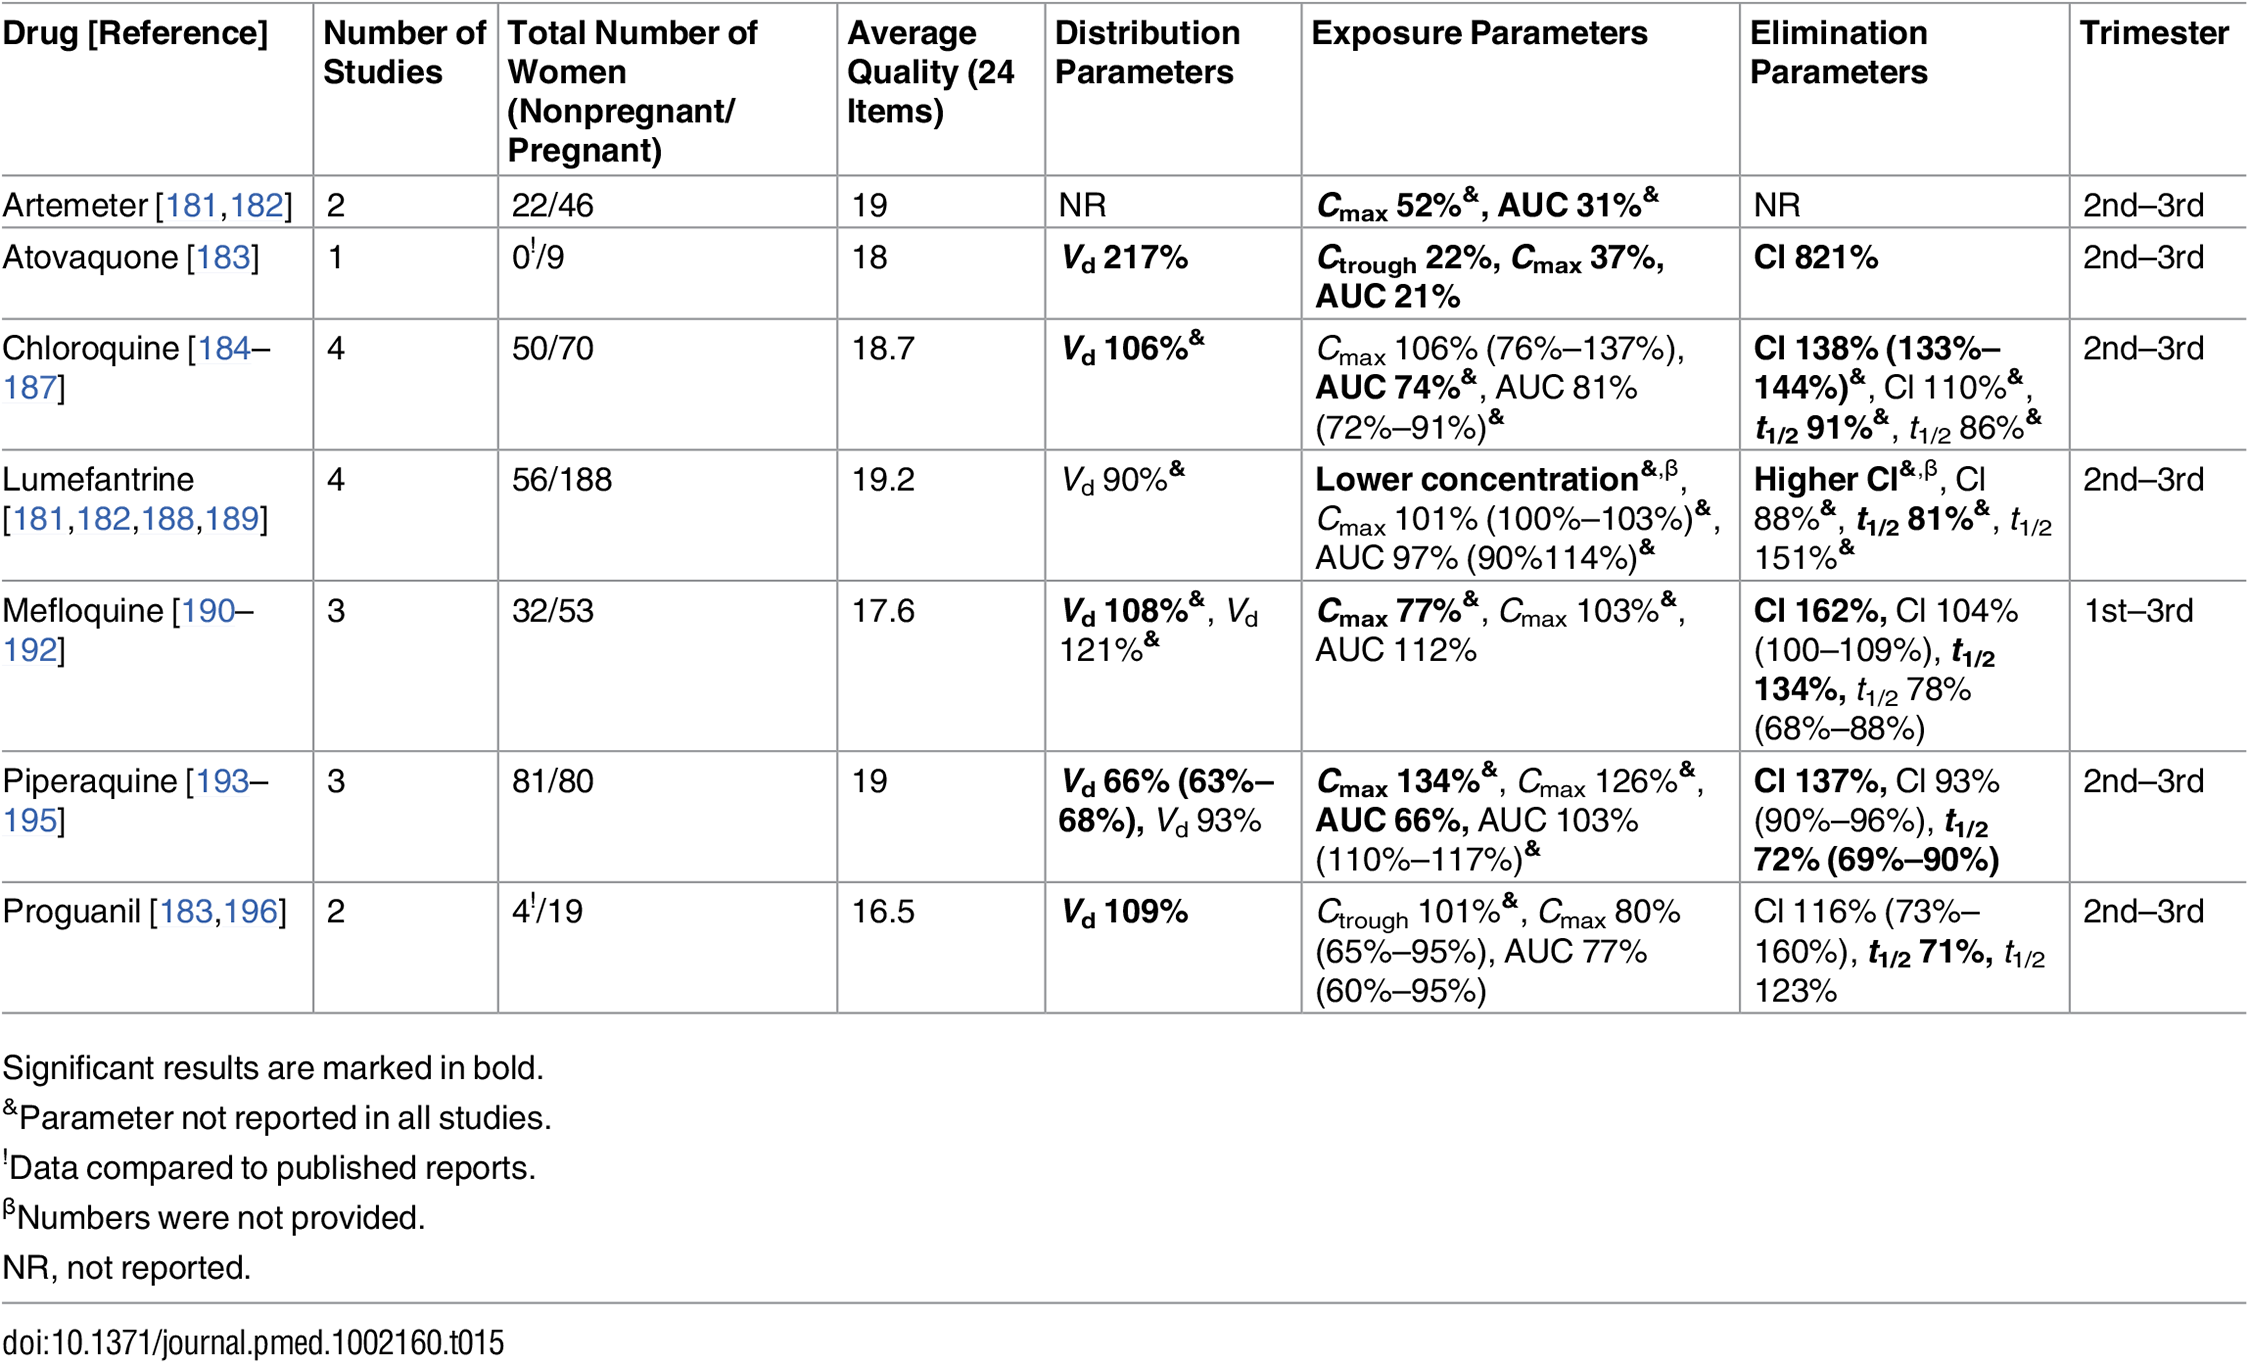 Antimalarial drugs: consistent/single studies of pregnancy-associated pharmacokinetic changes (percent calculated as pregnant/nonpregnant values).